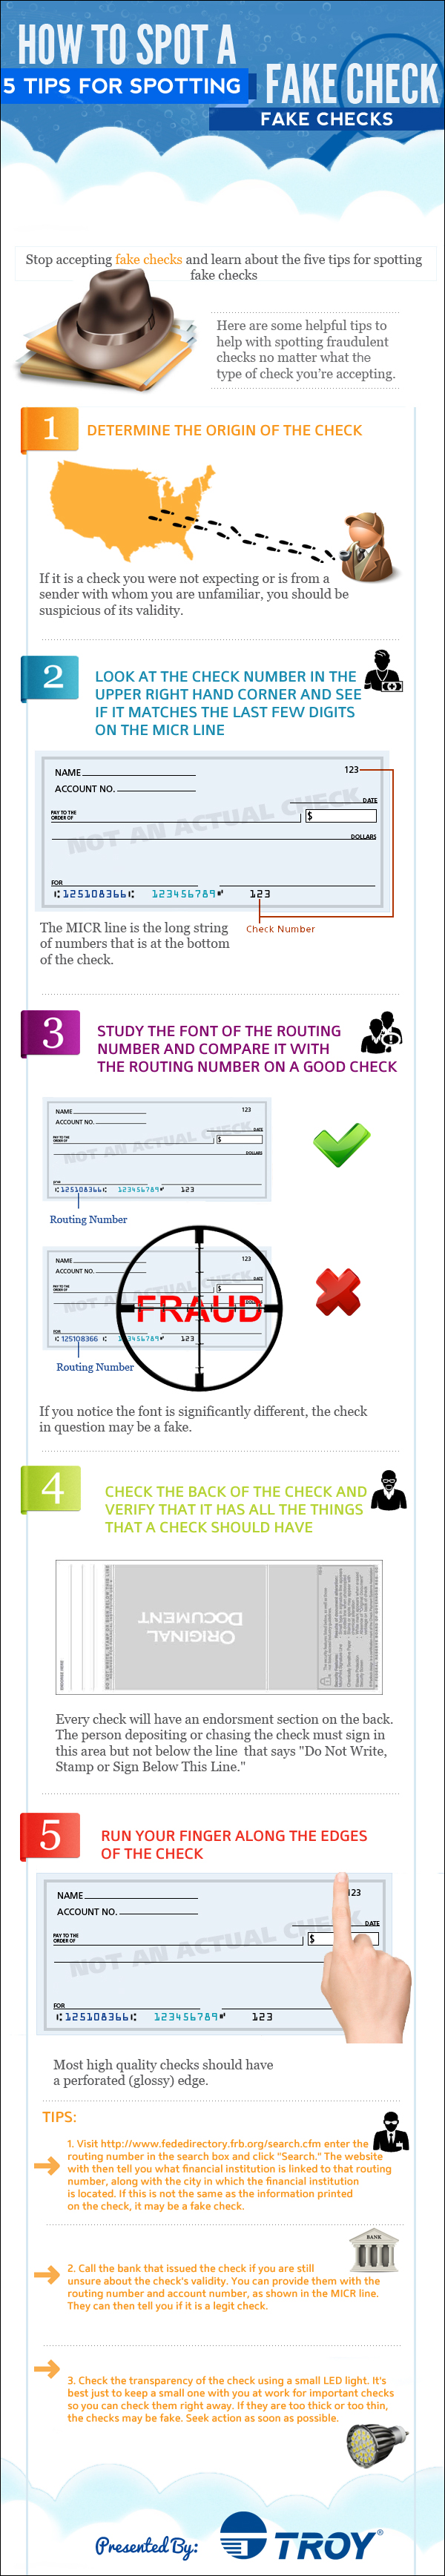 How To Spot A Fake Check Visual